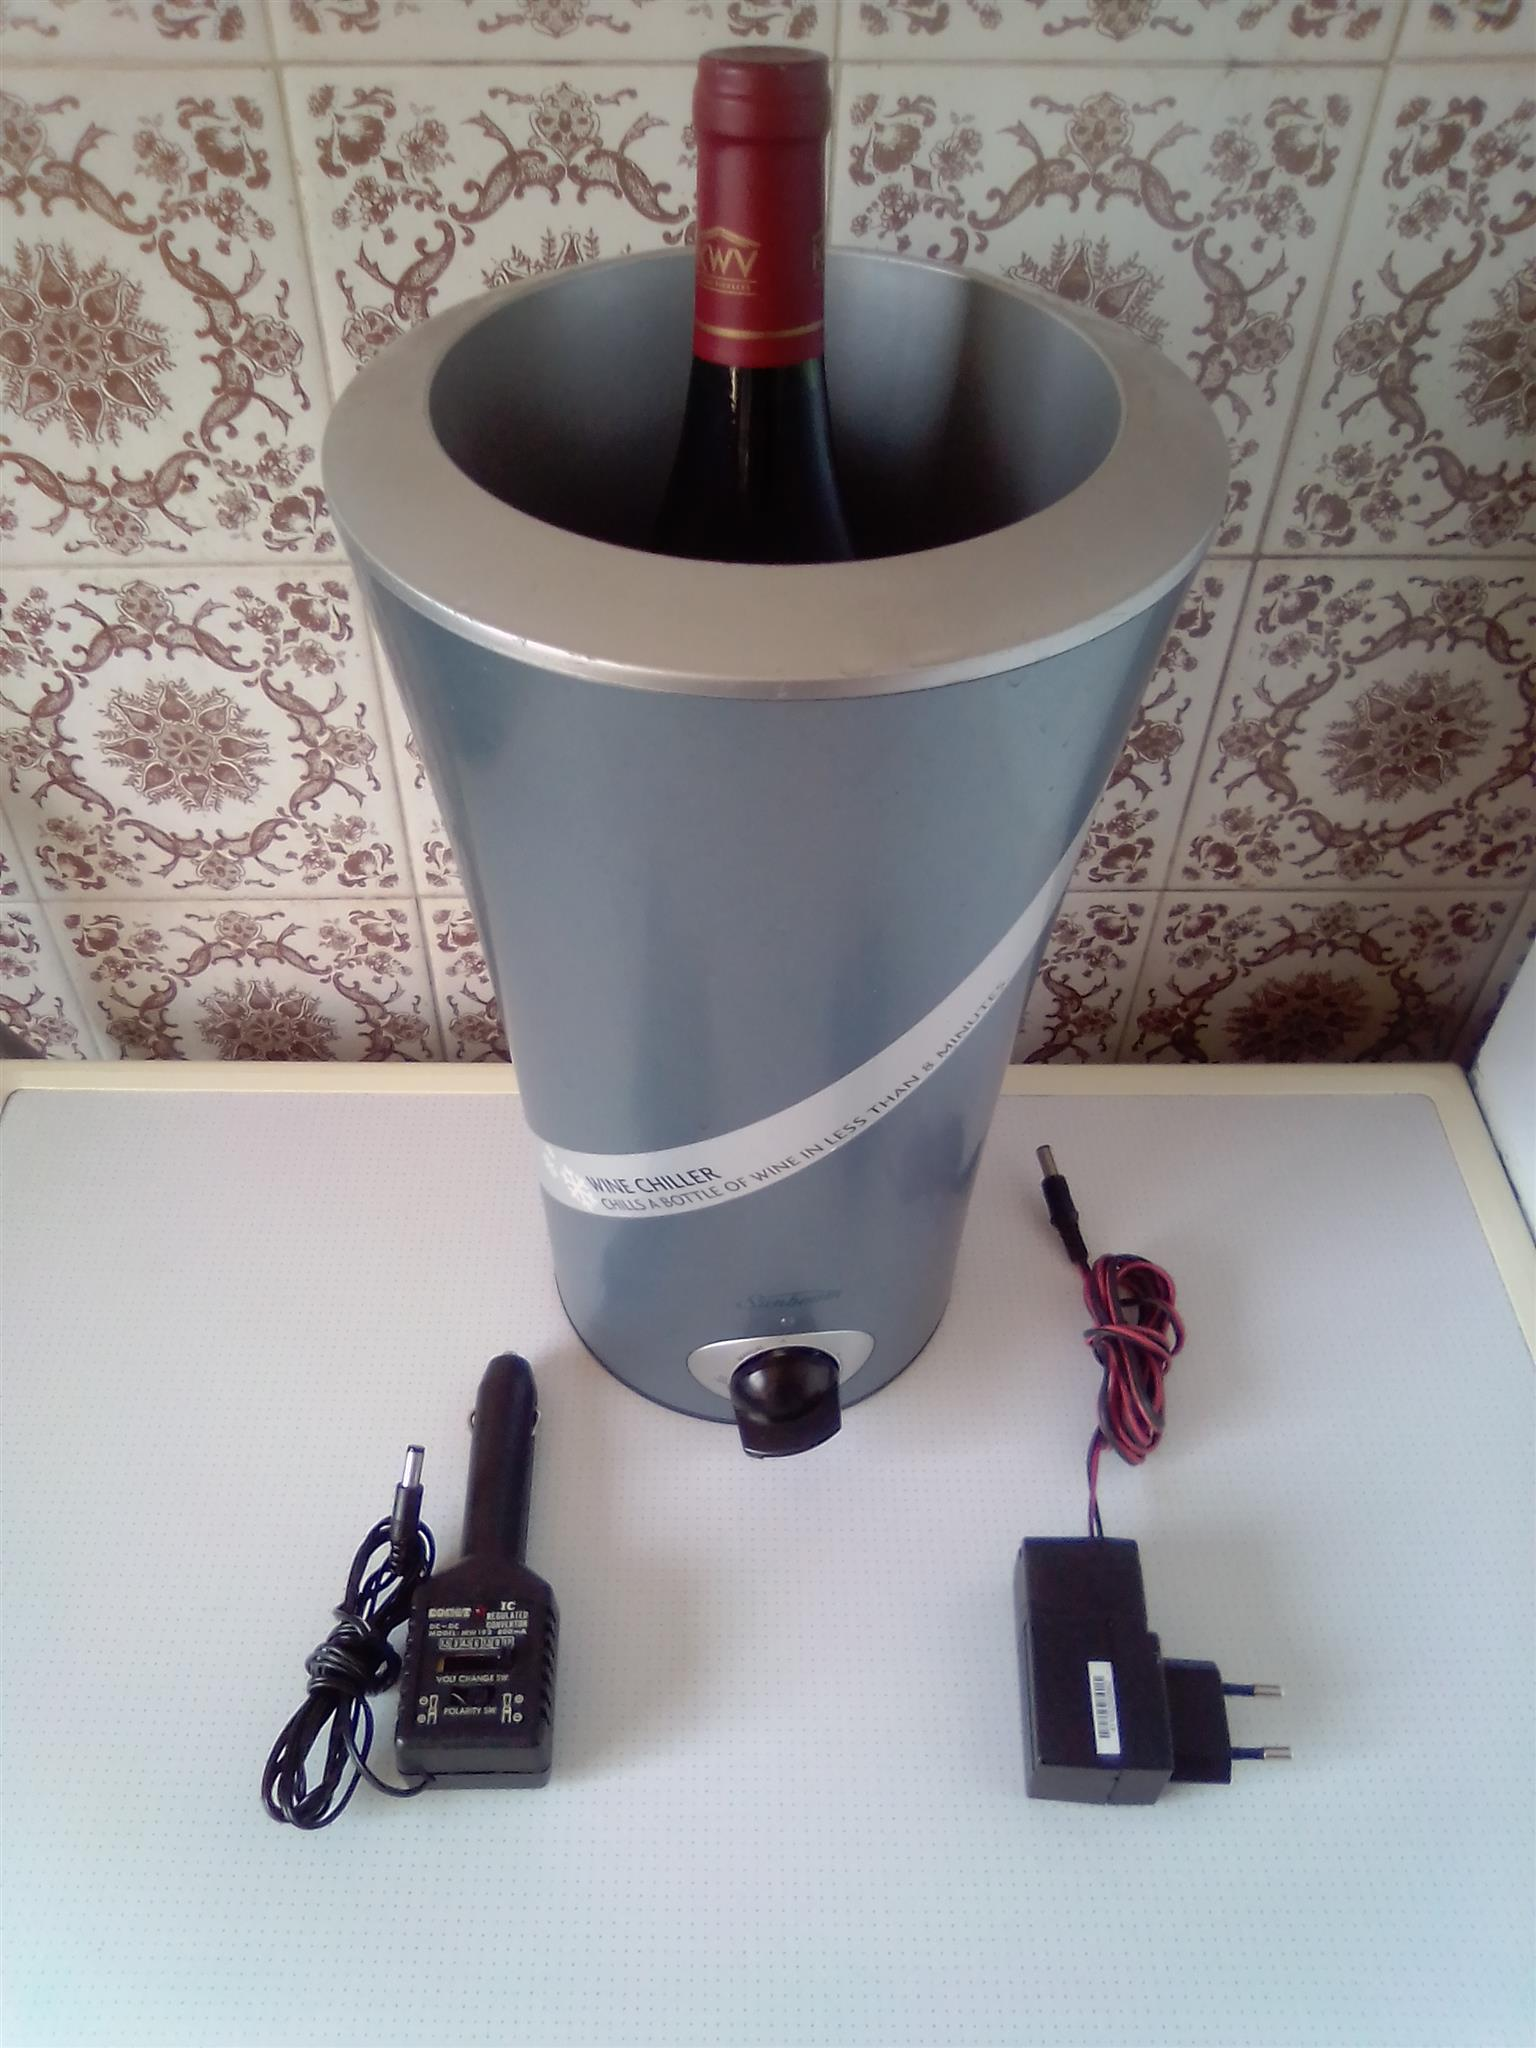 Wine Chiller Sunbeam with power adaptor. Child a bottle of wine in less then 8 minutes. I am in Orange Grove.